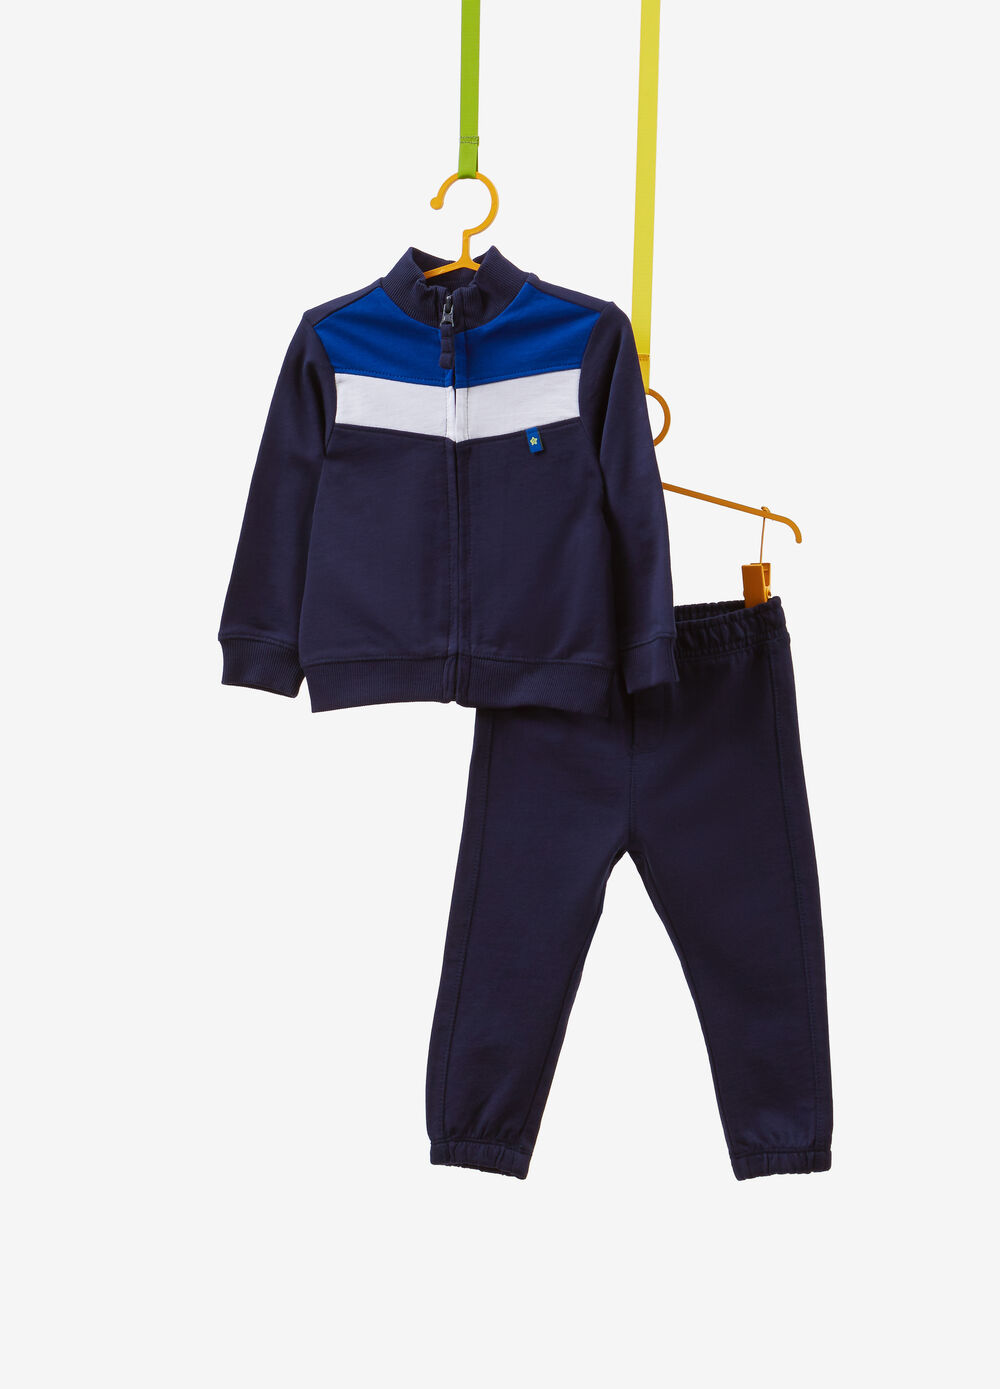 100% cotton tracksuit with inserts and patches